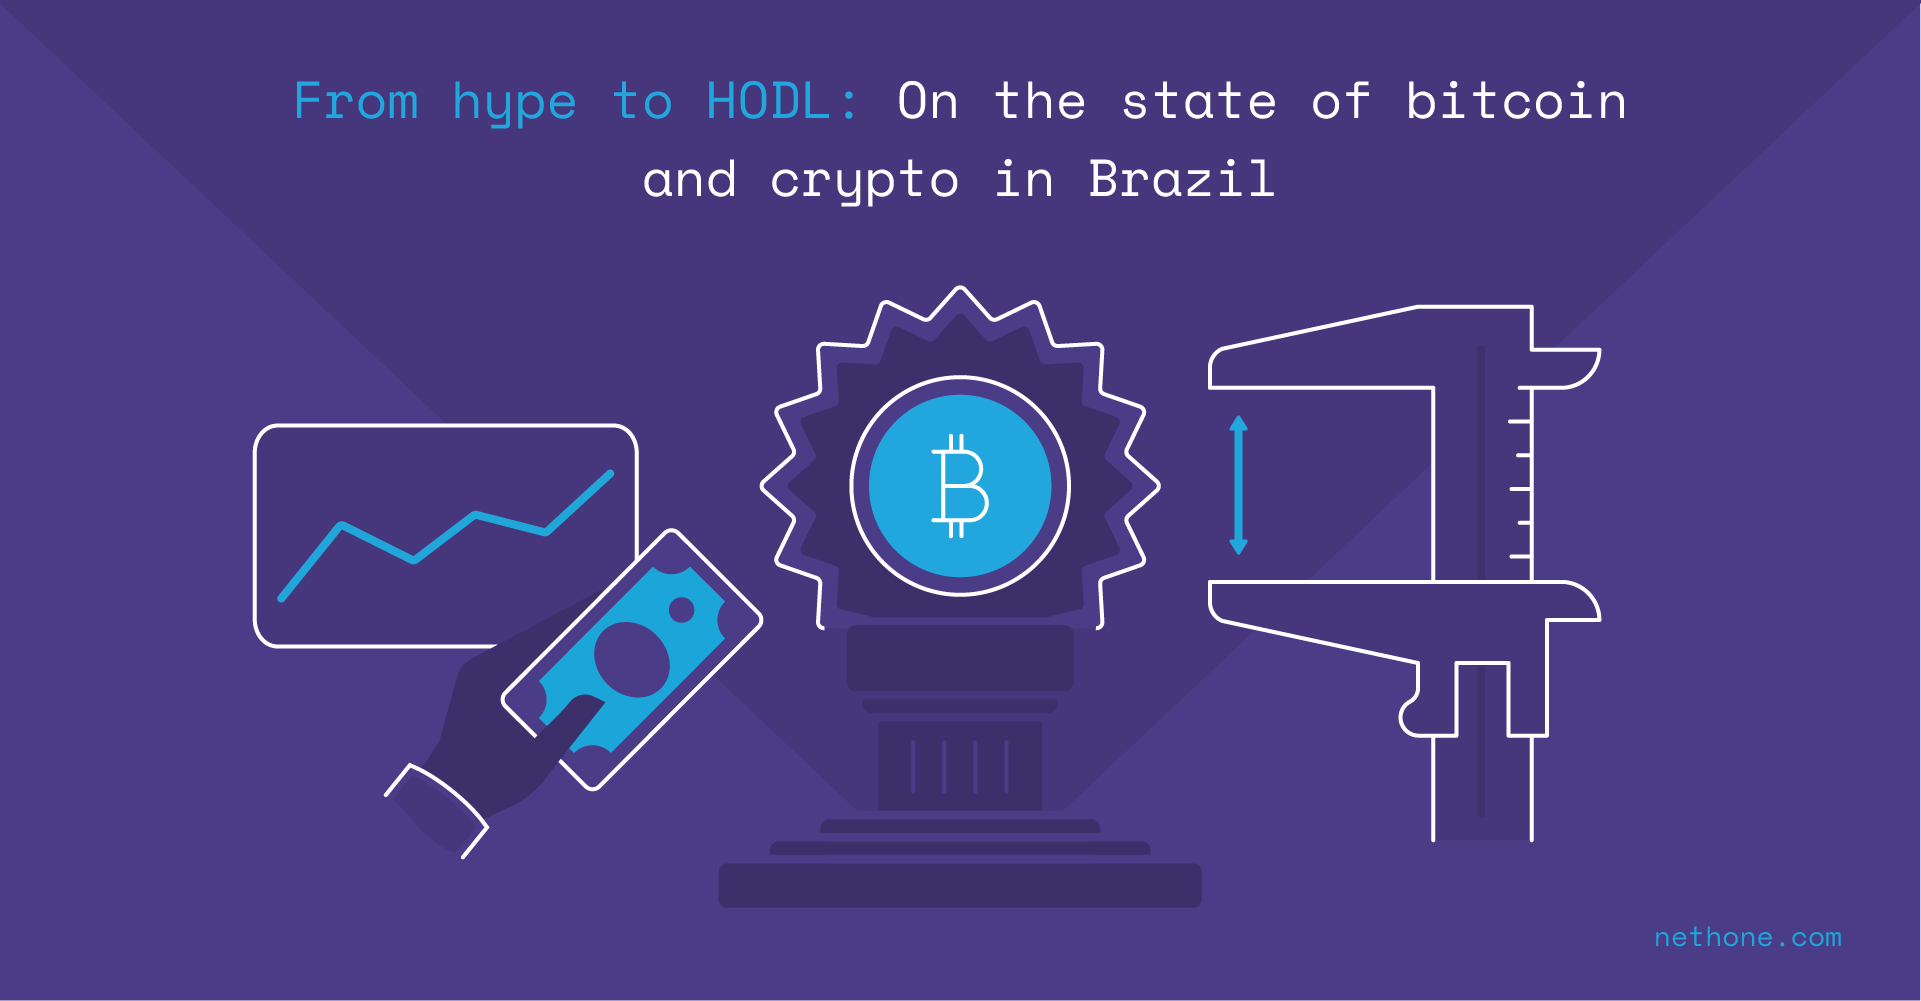 from hype to HODL on the state of bitcoin and crypto in brazil